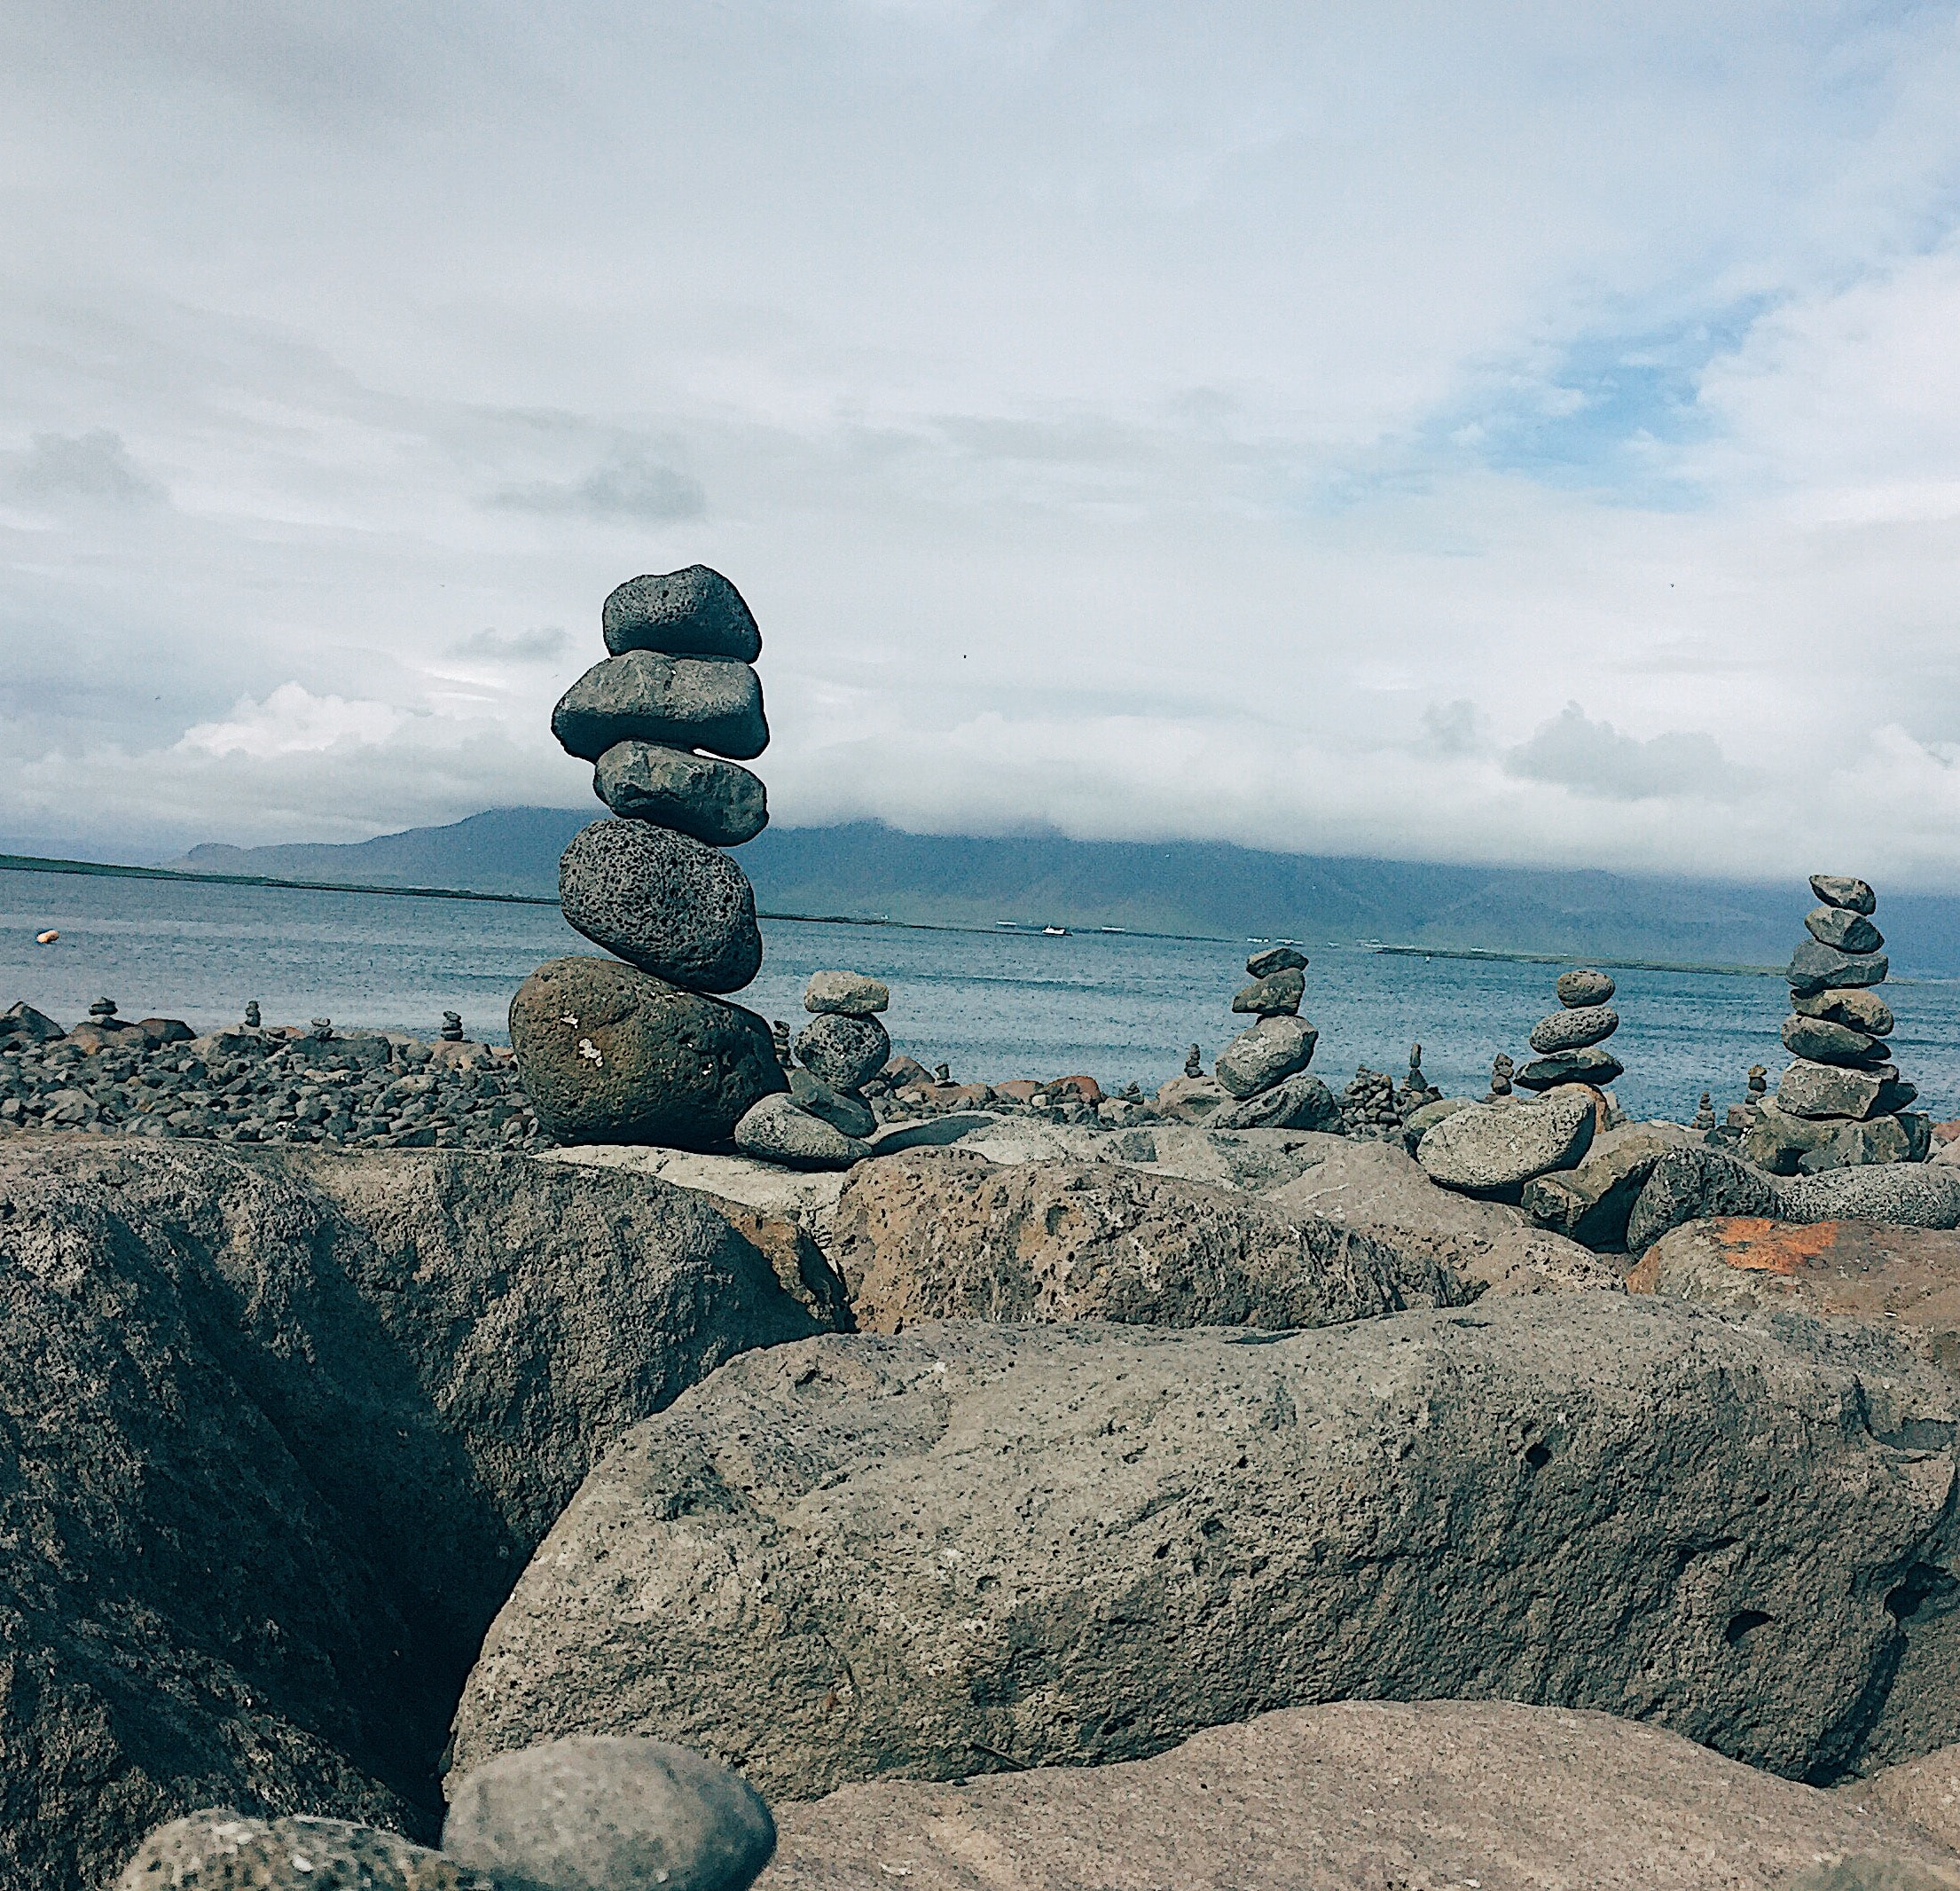 Stones on top of stones. Lots of cairns alongside roads. It was used pre-GPS days as a guide, but are discouraged as stone removal and displacement disrupts the land structure.